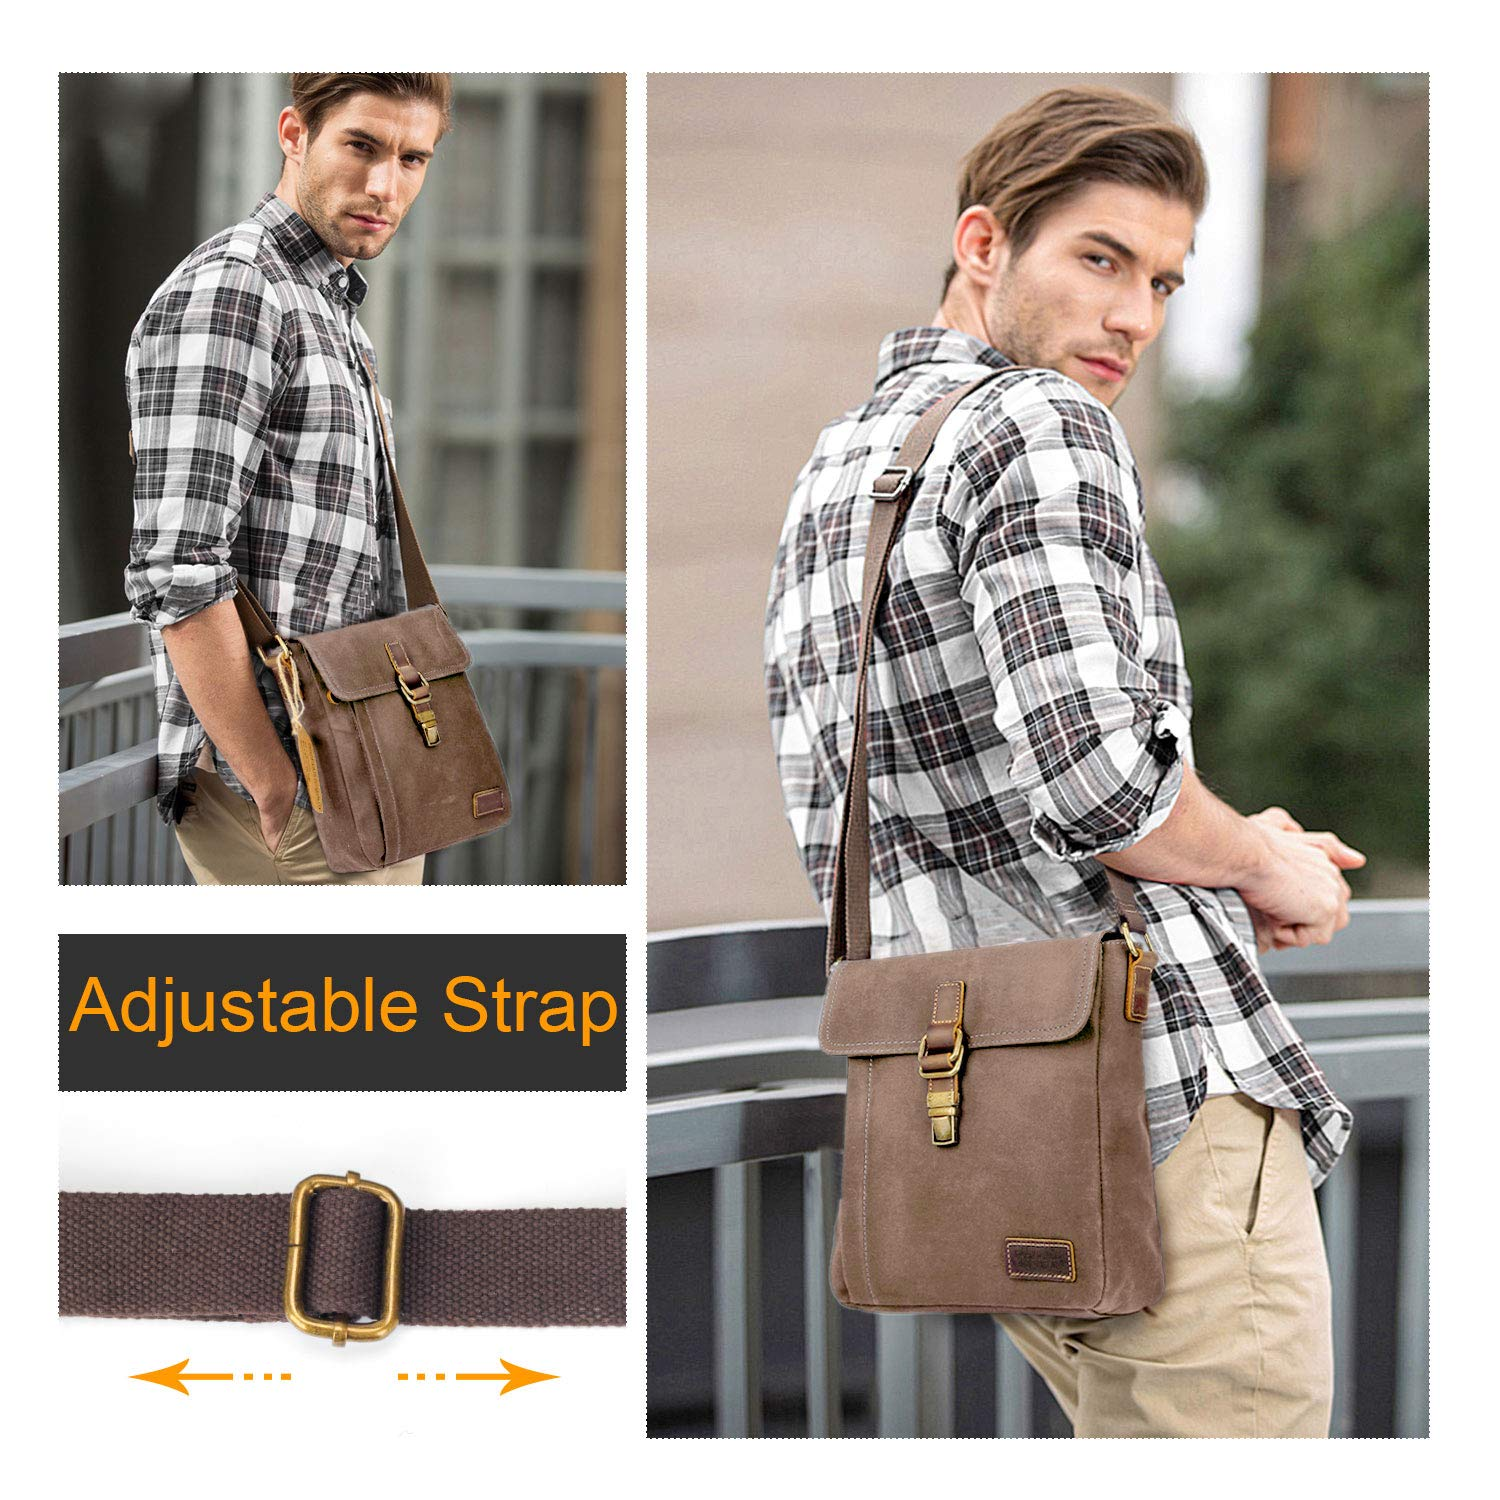 Manificent Messenger Bag, Water-resistant Canvas Shoulder Bags Anti-theft Brush Crossbody Bags